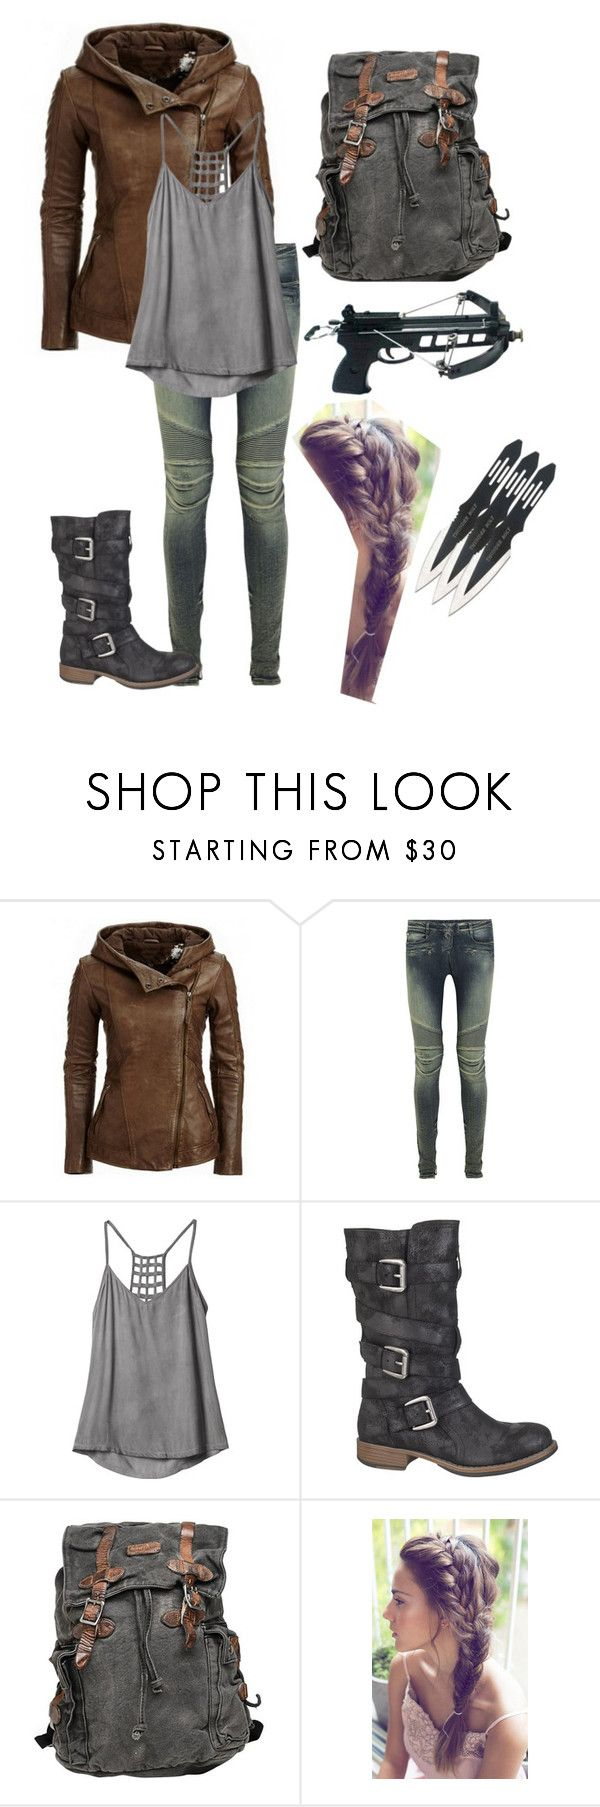 Leather jacket killer b&q -  Post Apocalyptic Inspired Outfit By Lexi Tolhurst Liked On Polyvore Featuring Balmain